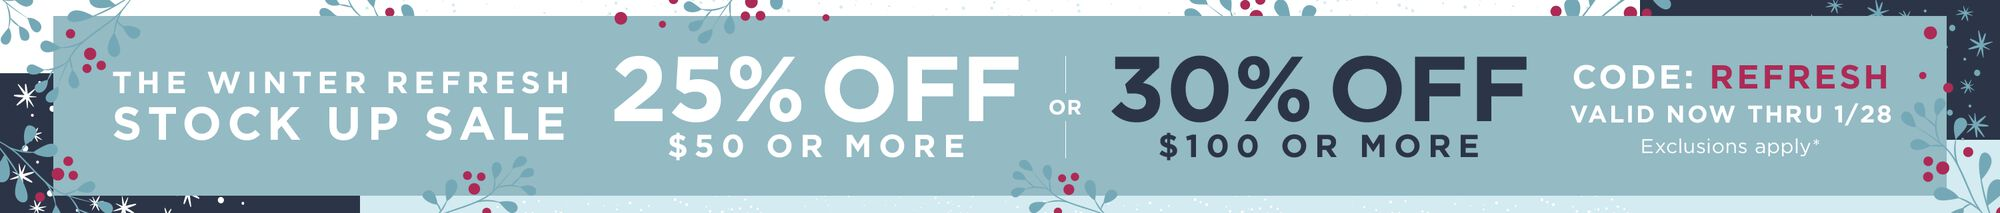 The Winter Refresh Stock Up Sale - 25% OFF $50 or more or 30% off $100 or more - use code: REFRESH - valid now thru 1/28 - exclusions apply